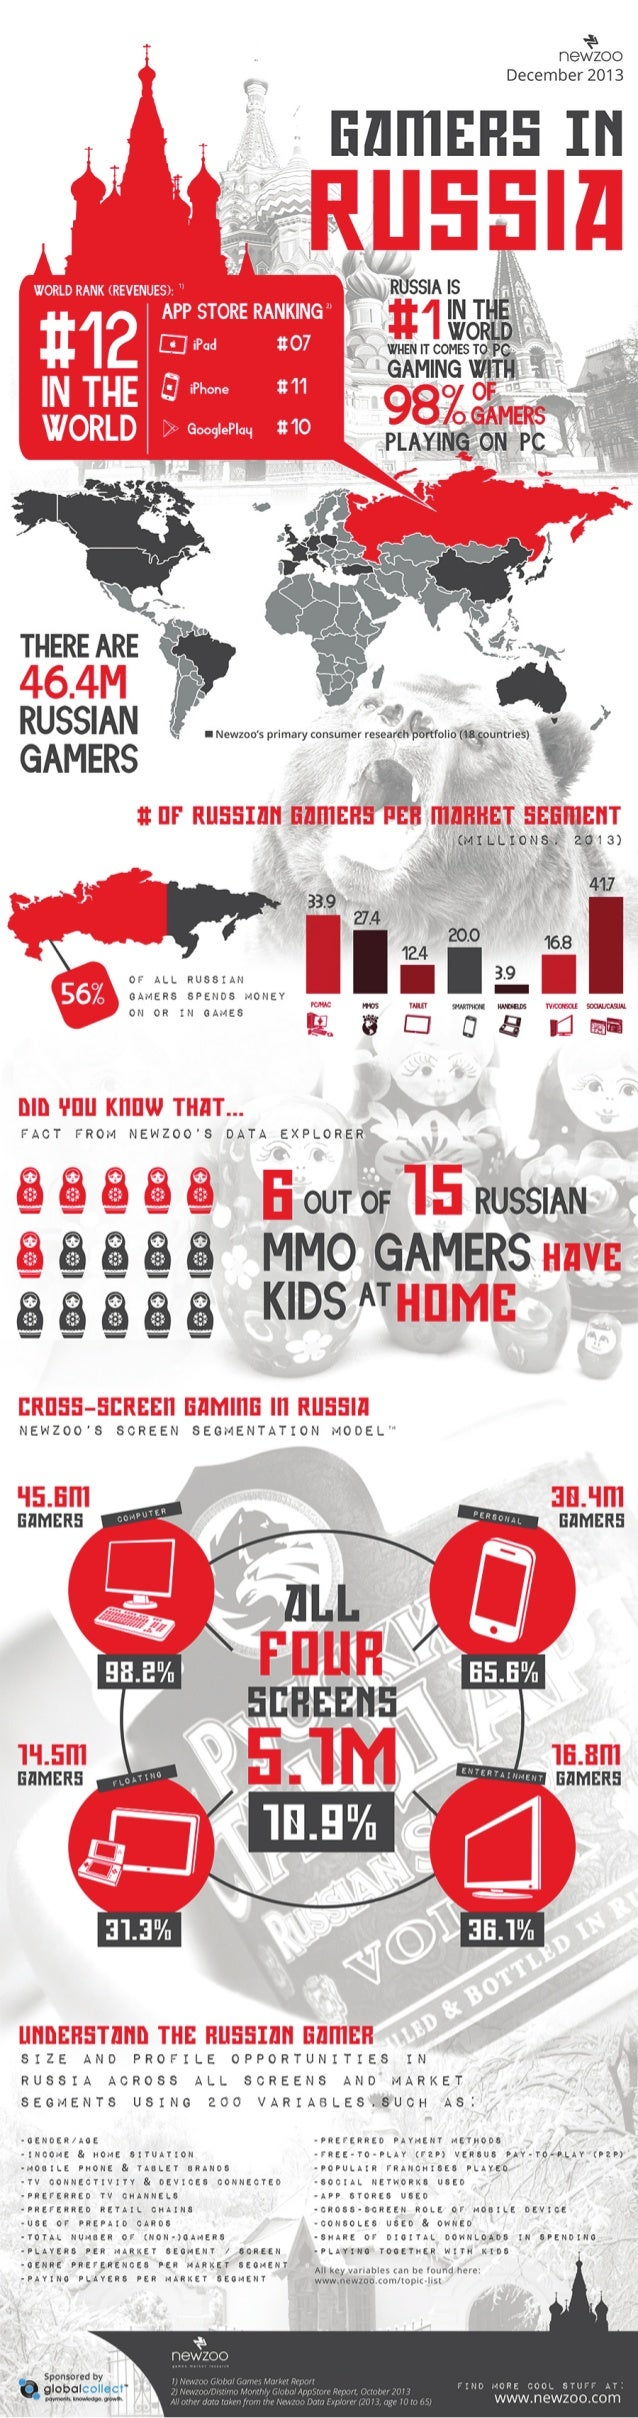 Infographic: The Russian Games Market